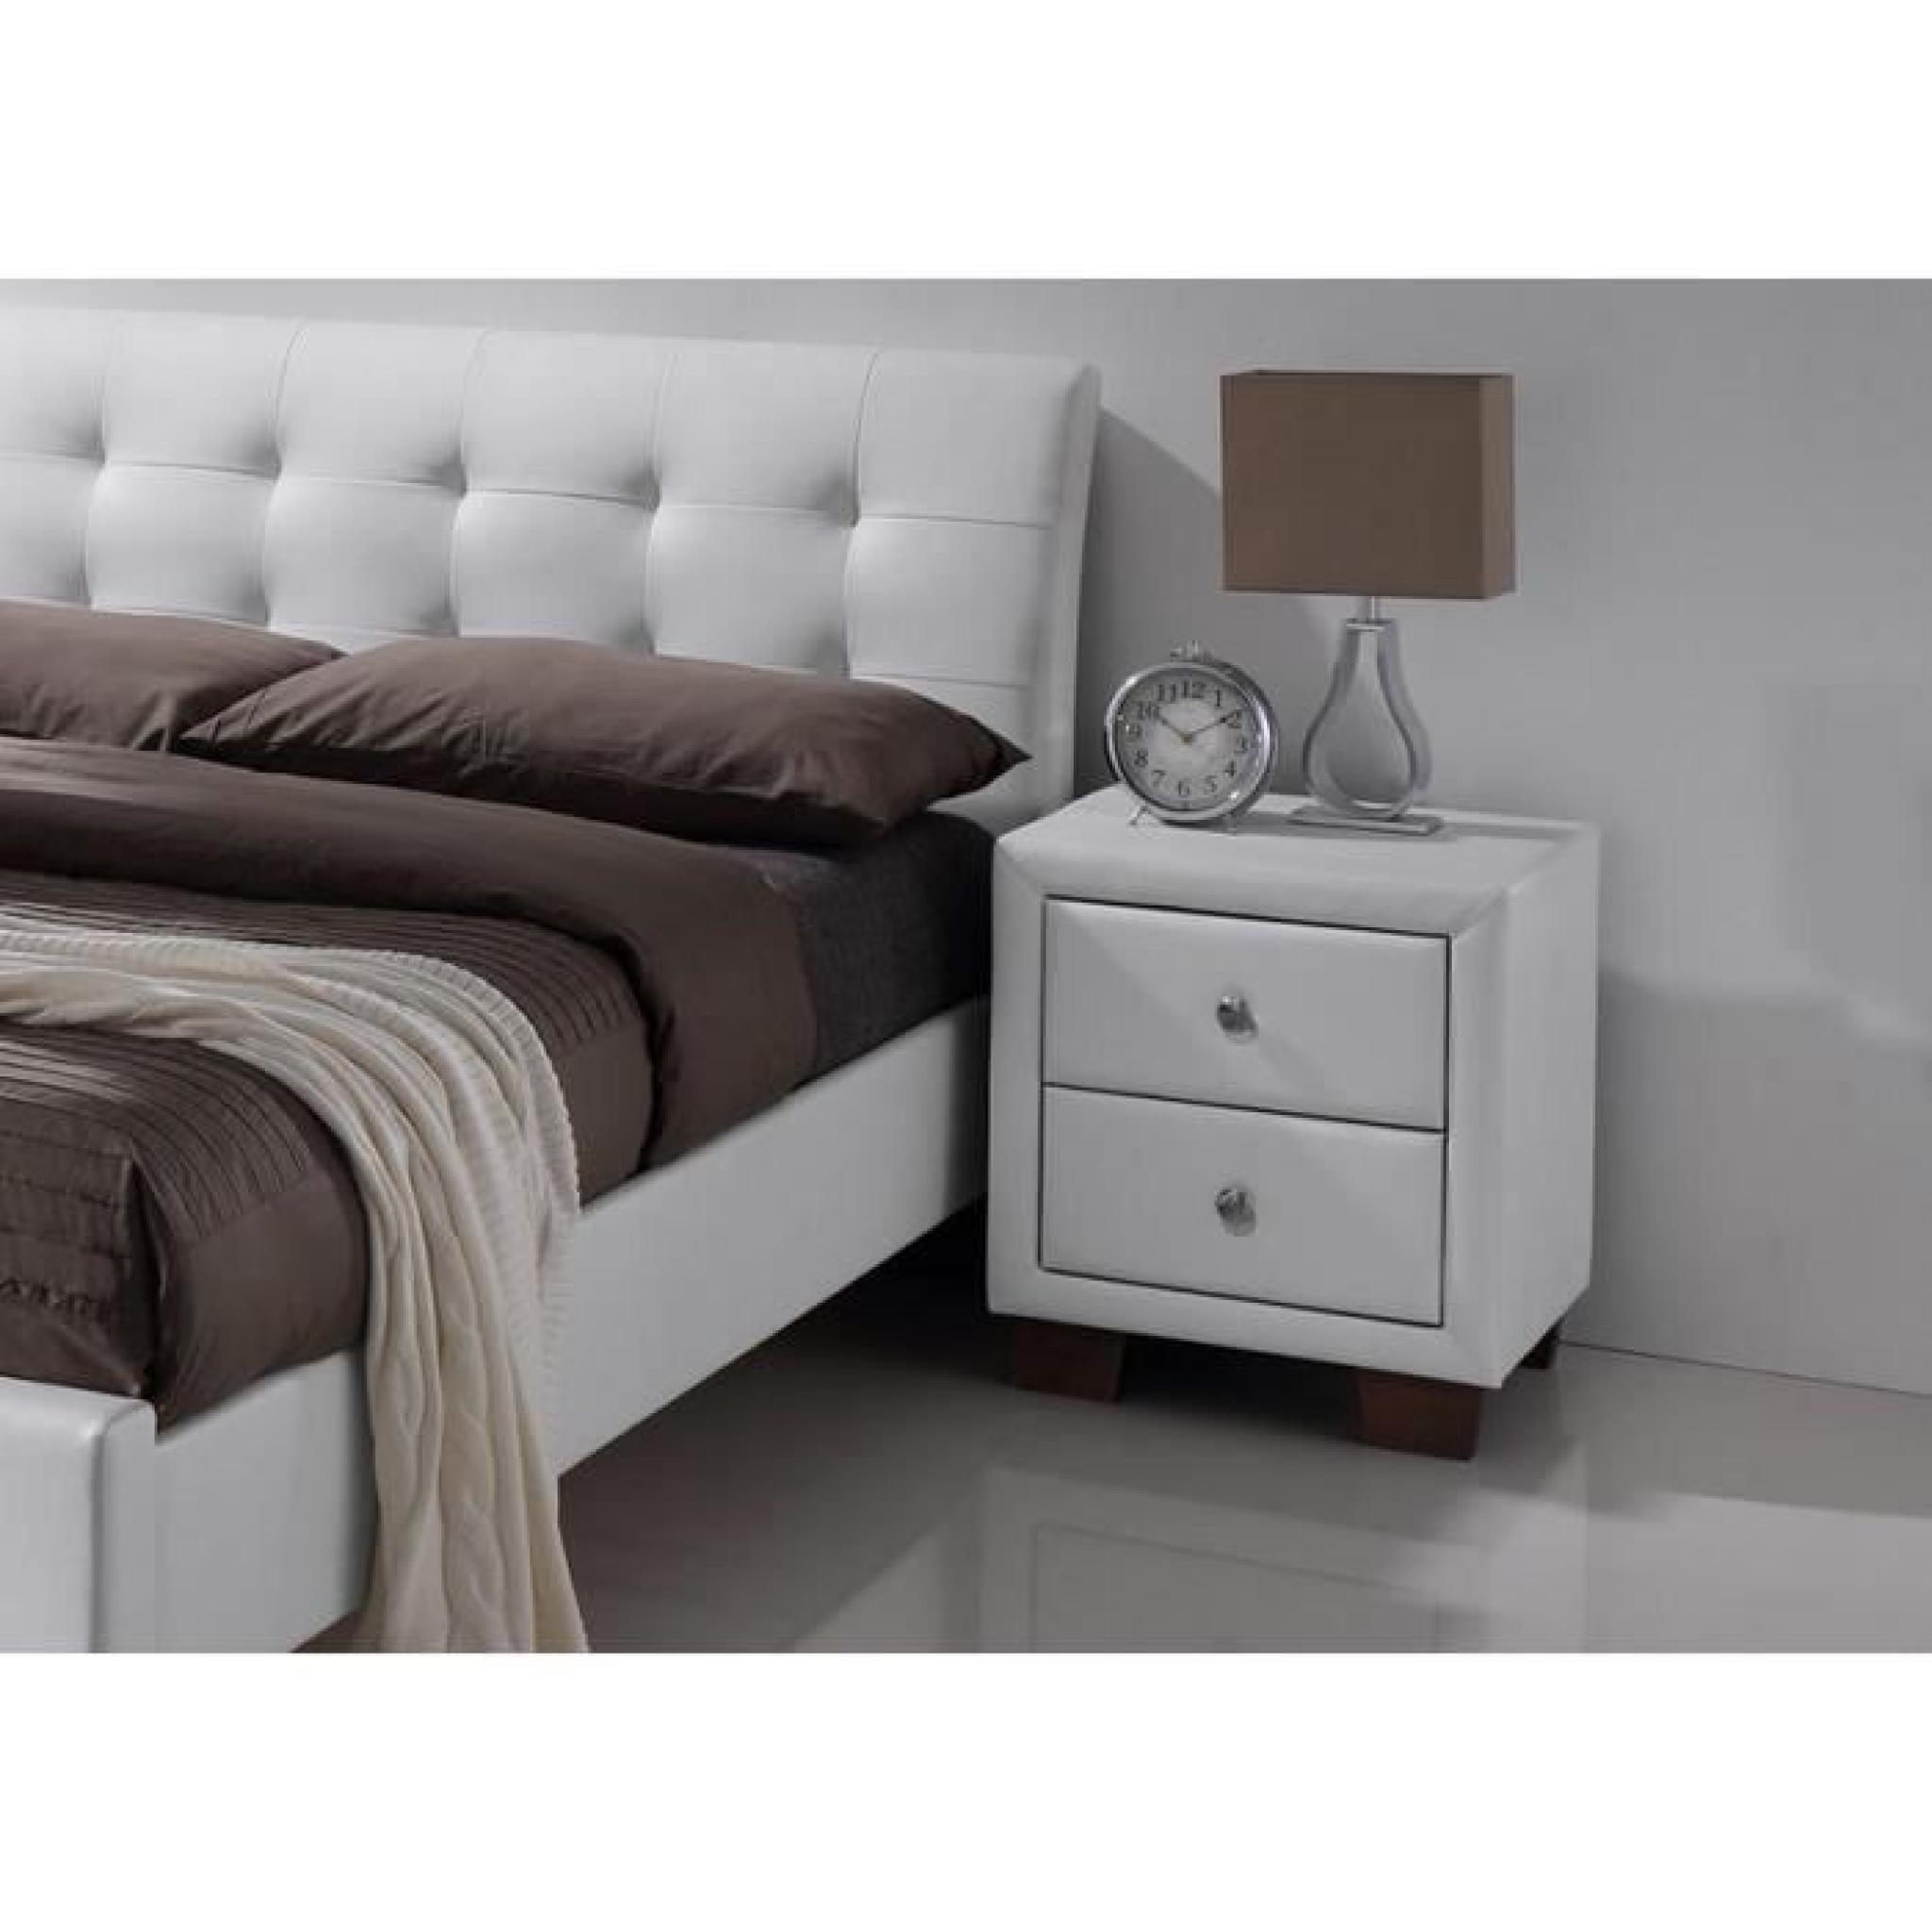 lit simili blanc avec t te de lit samara 140 x 190 achat vente lit pas cher couleur et. Black Bedroom Furniture Sets. Home Design Ideas